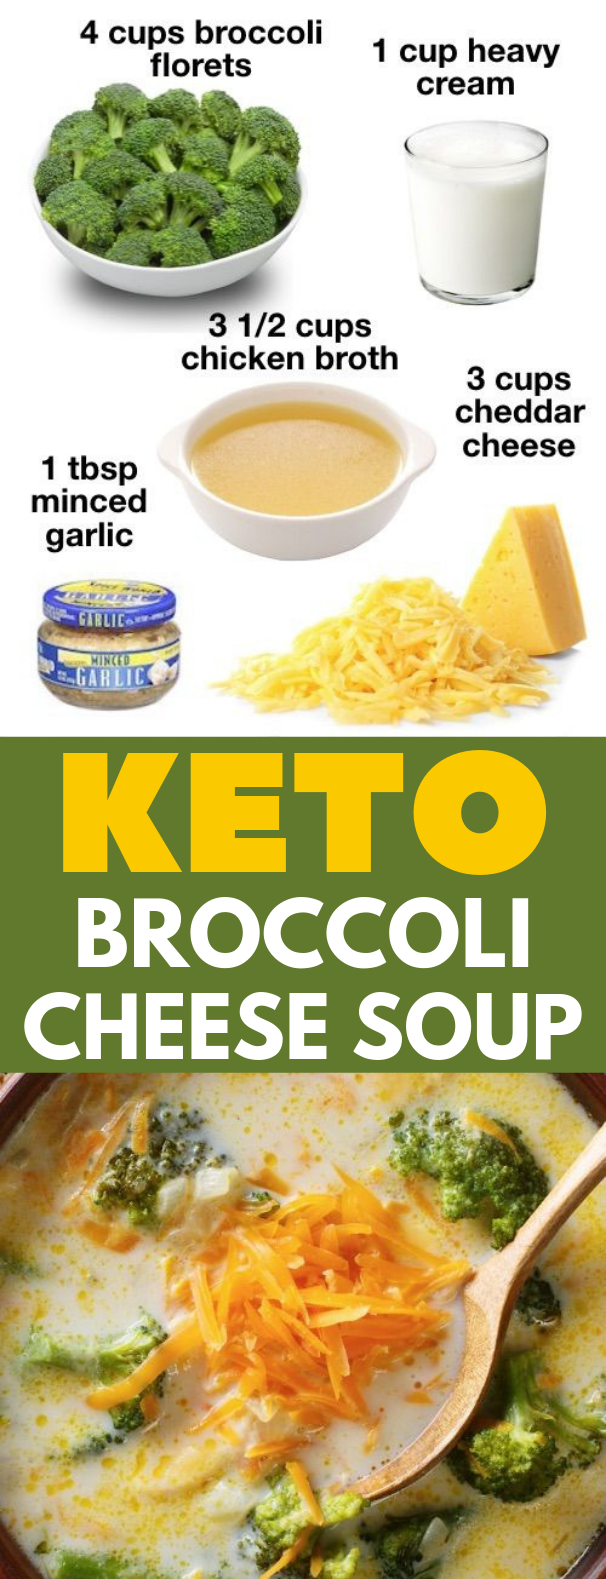 Low Carb Broccoli Cheese Soup #Soup #Keto